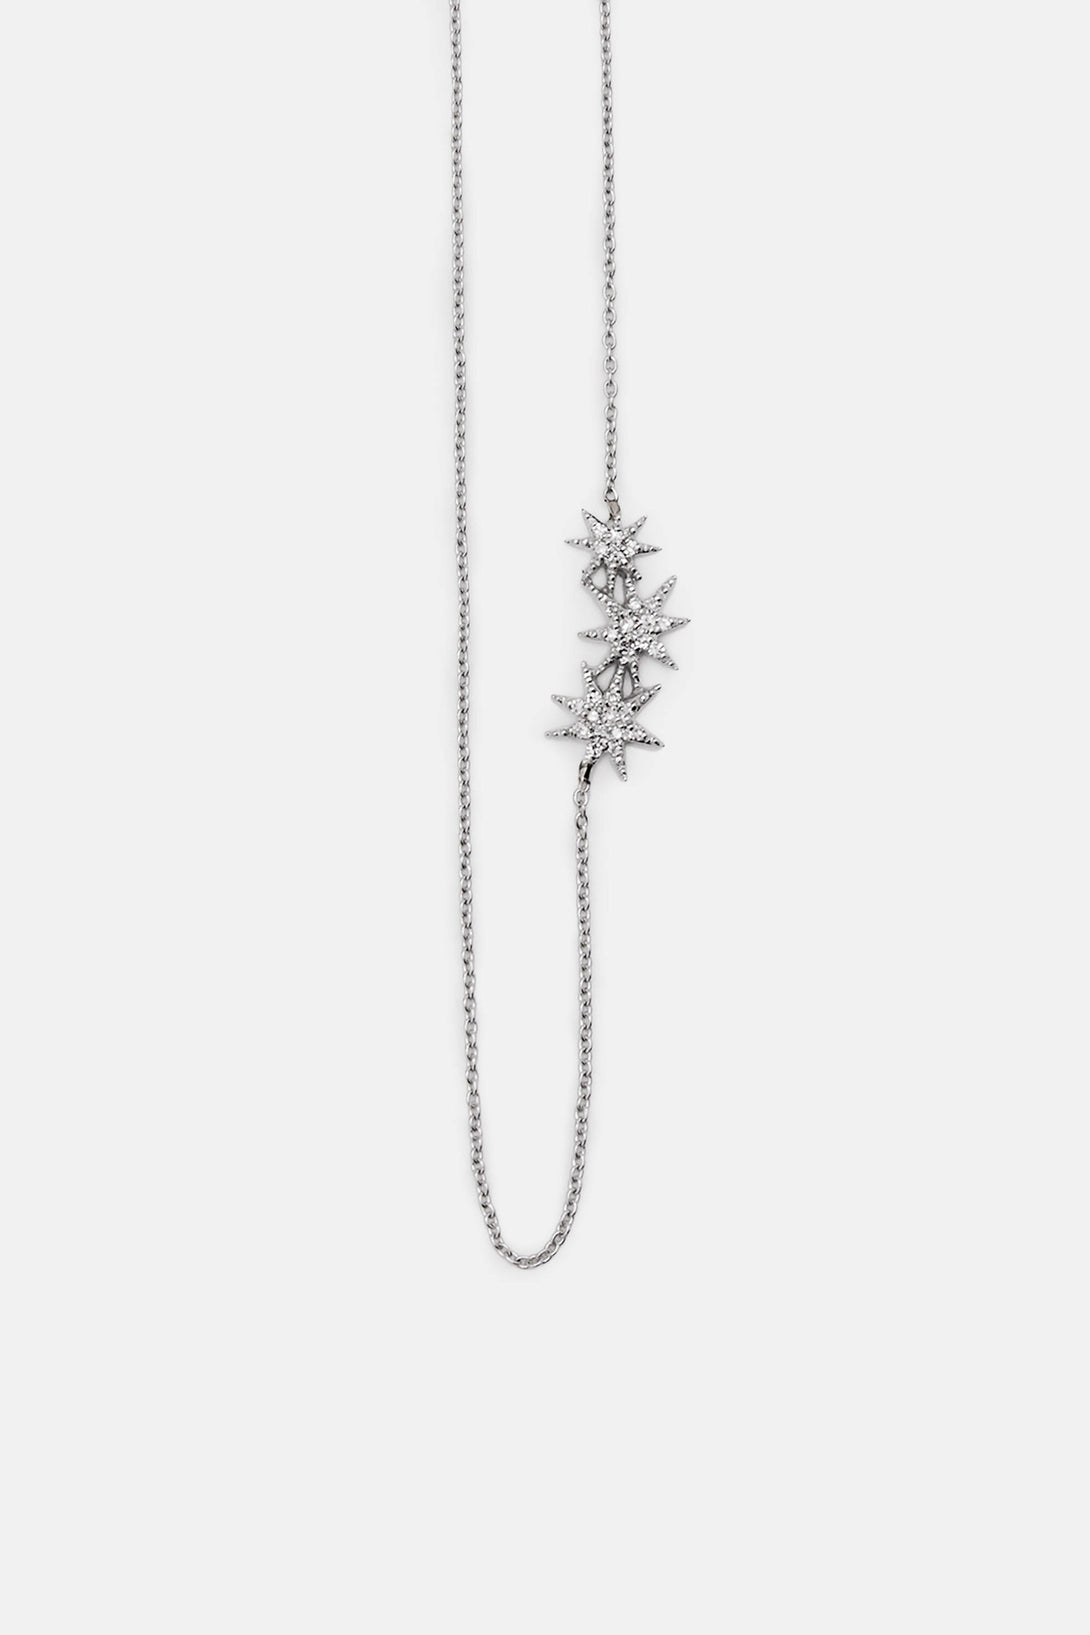 Pave Triple Shooting Star Necklace - White Gold